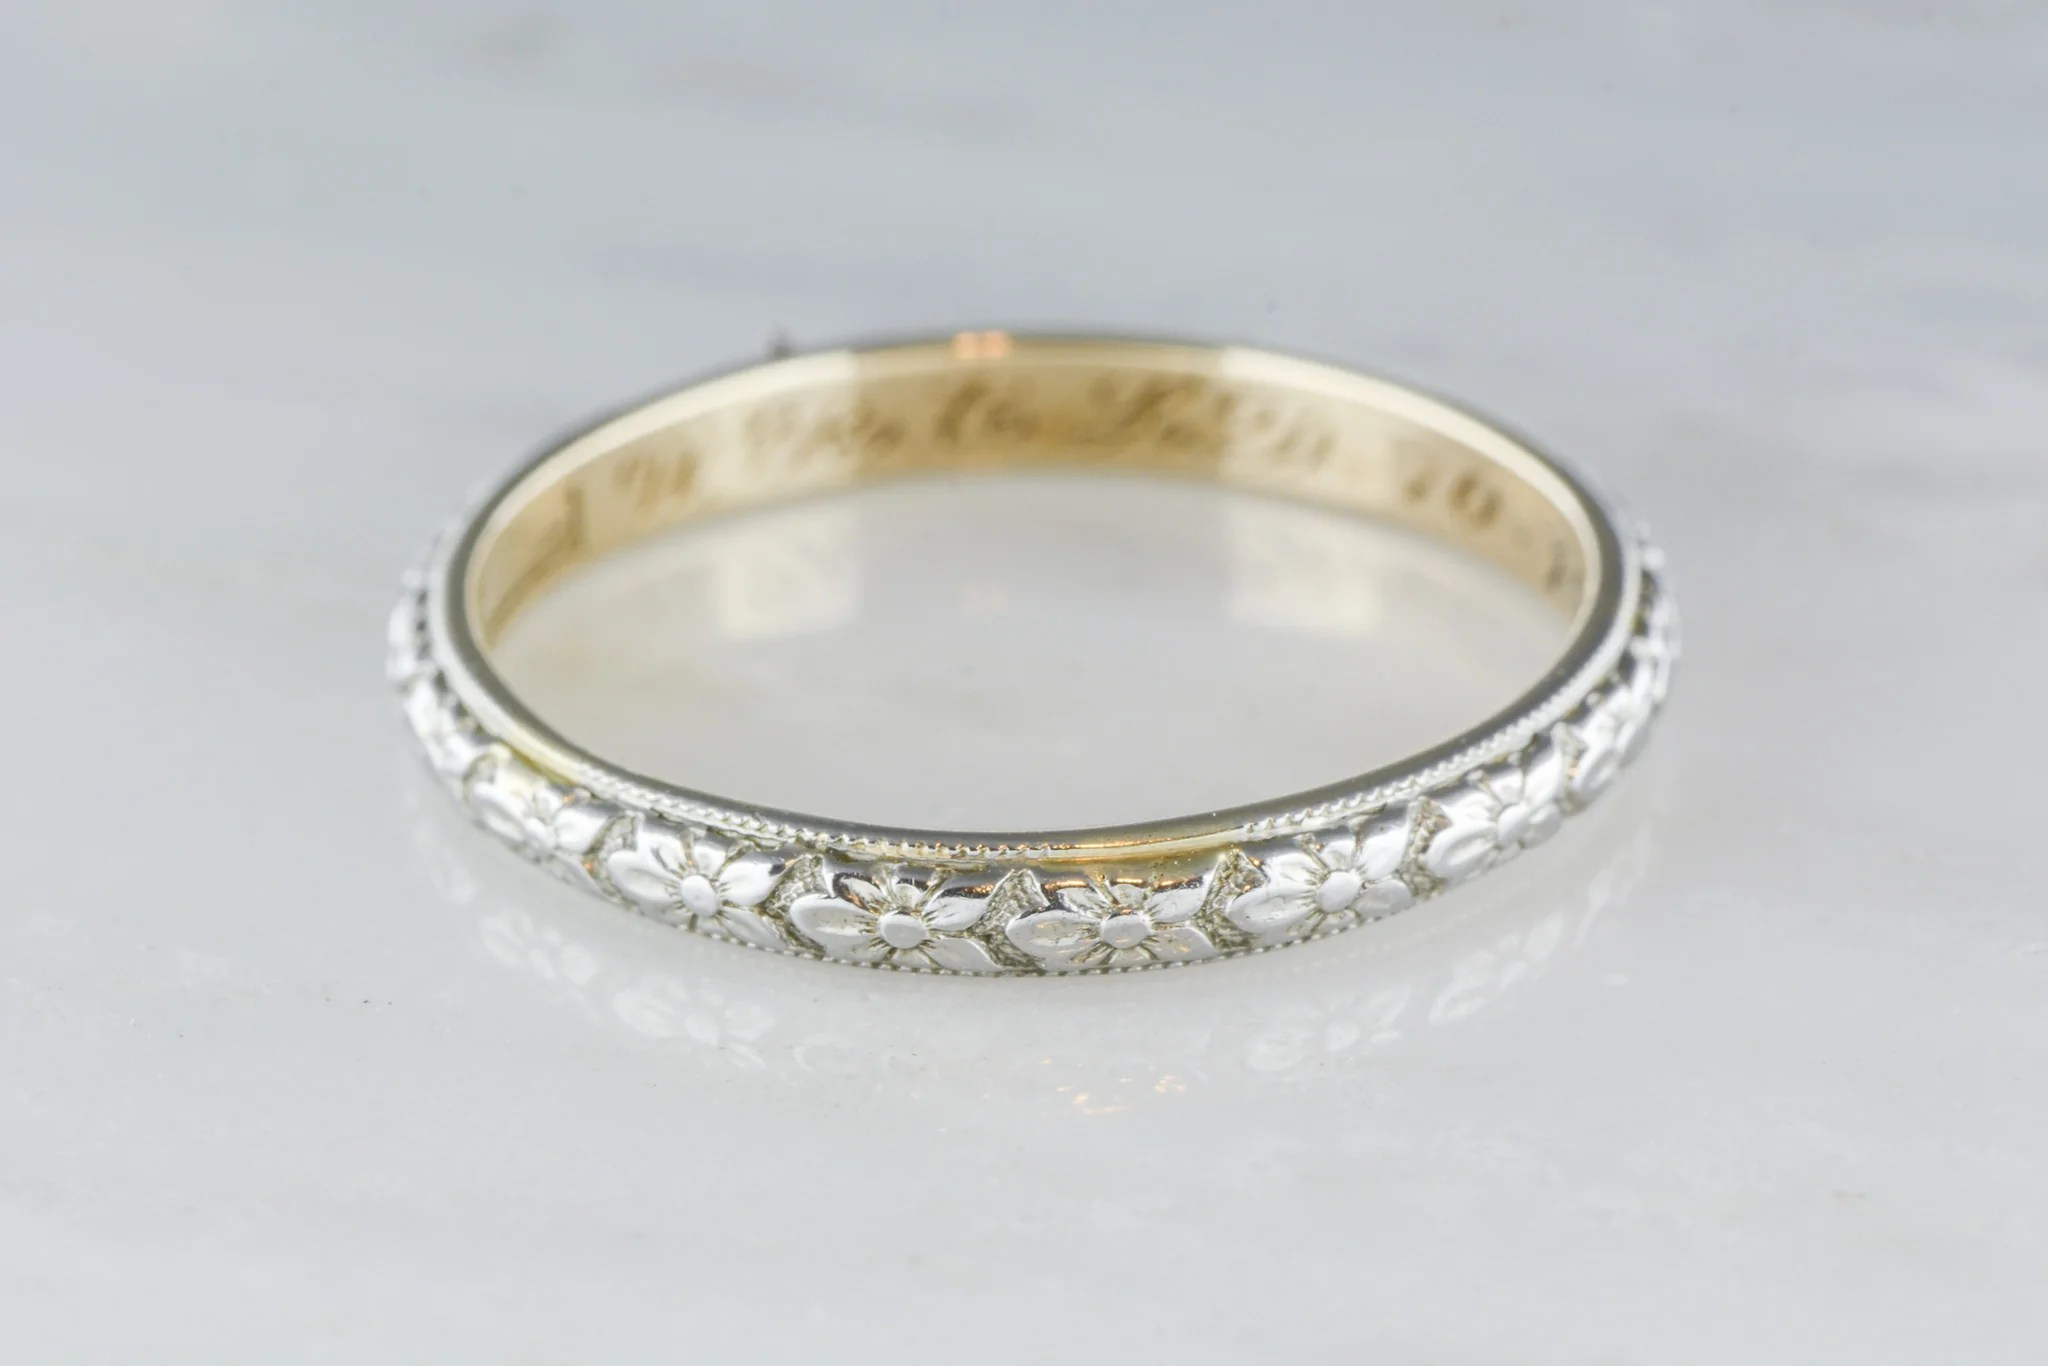 antique wedding band antique mens wedding bands Patterned Wedding Band Set Vintage Style Wedding Rings His and Hers Set Antique Style Rings 14K Gold Rococo Flourish Set His and Hers Bands